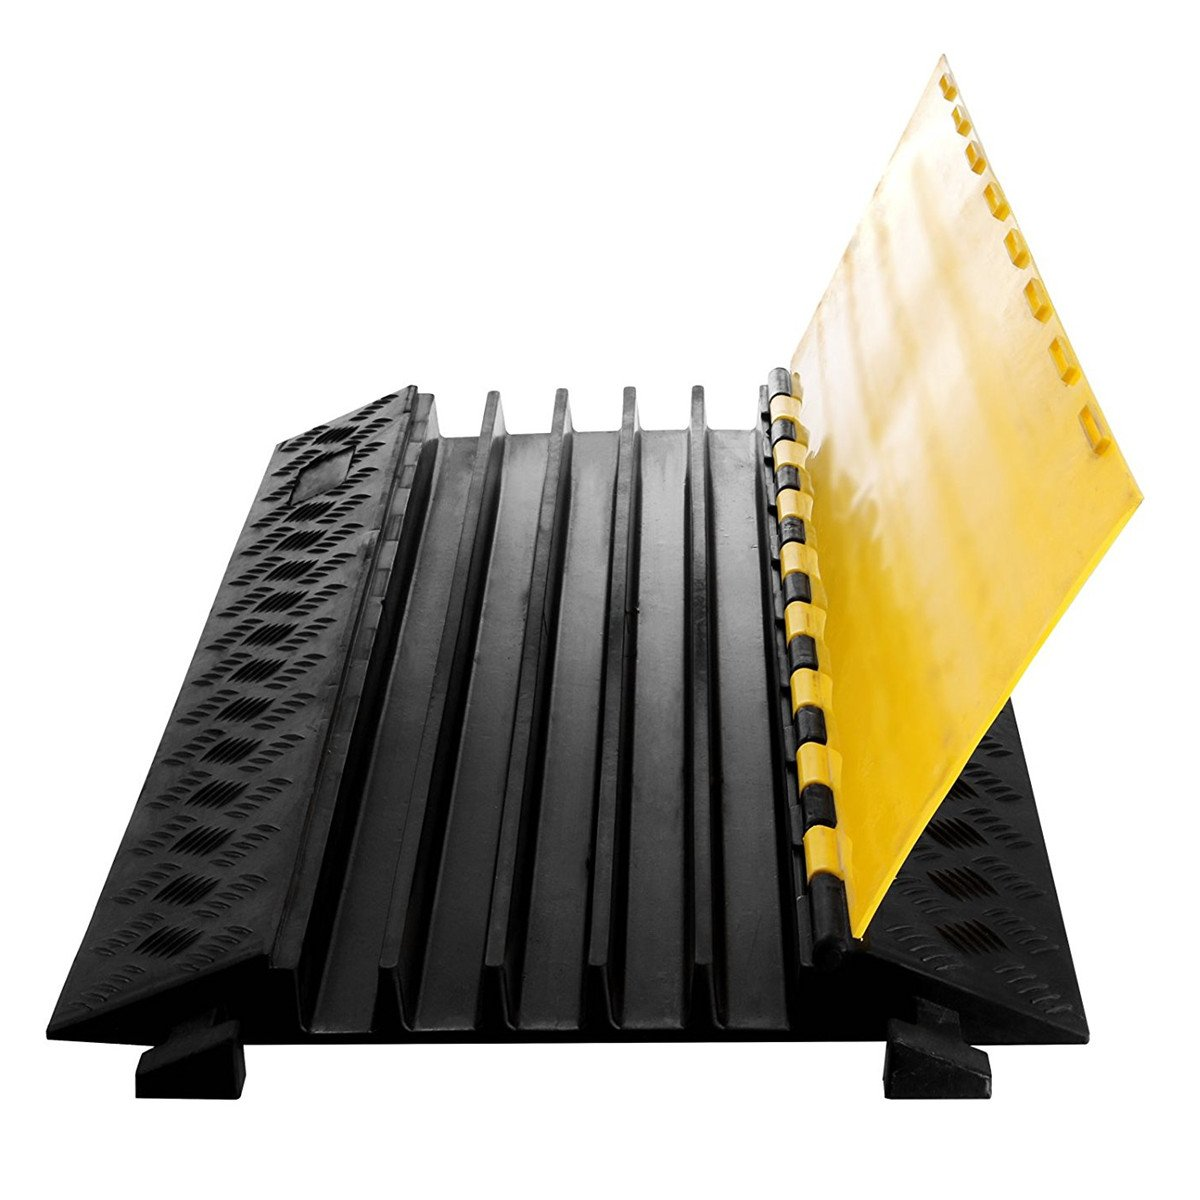 BestEquip 5 Channel Cable Protector 18000 LBS Capacity Extreme Rubber Cable Protector Cable Protector with Black Ramp and Yellow lid Connector for Cable and Wire Protect